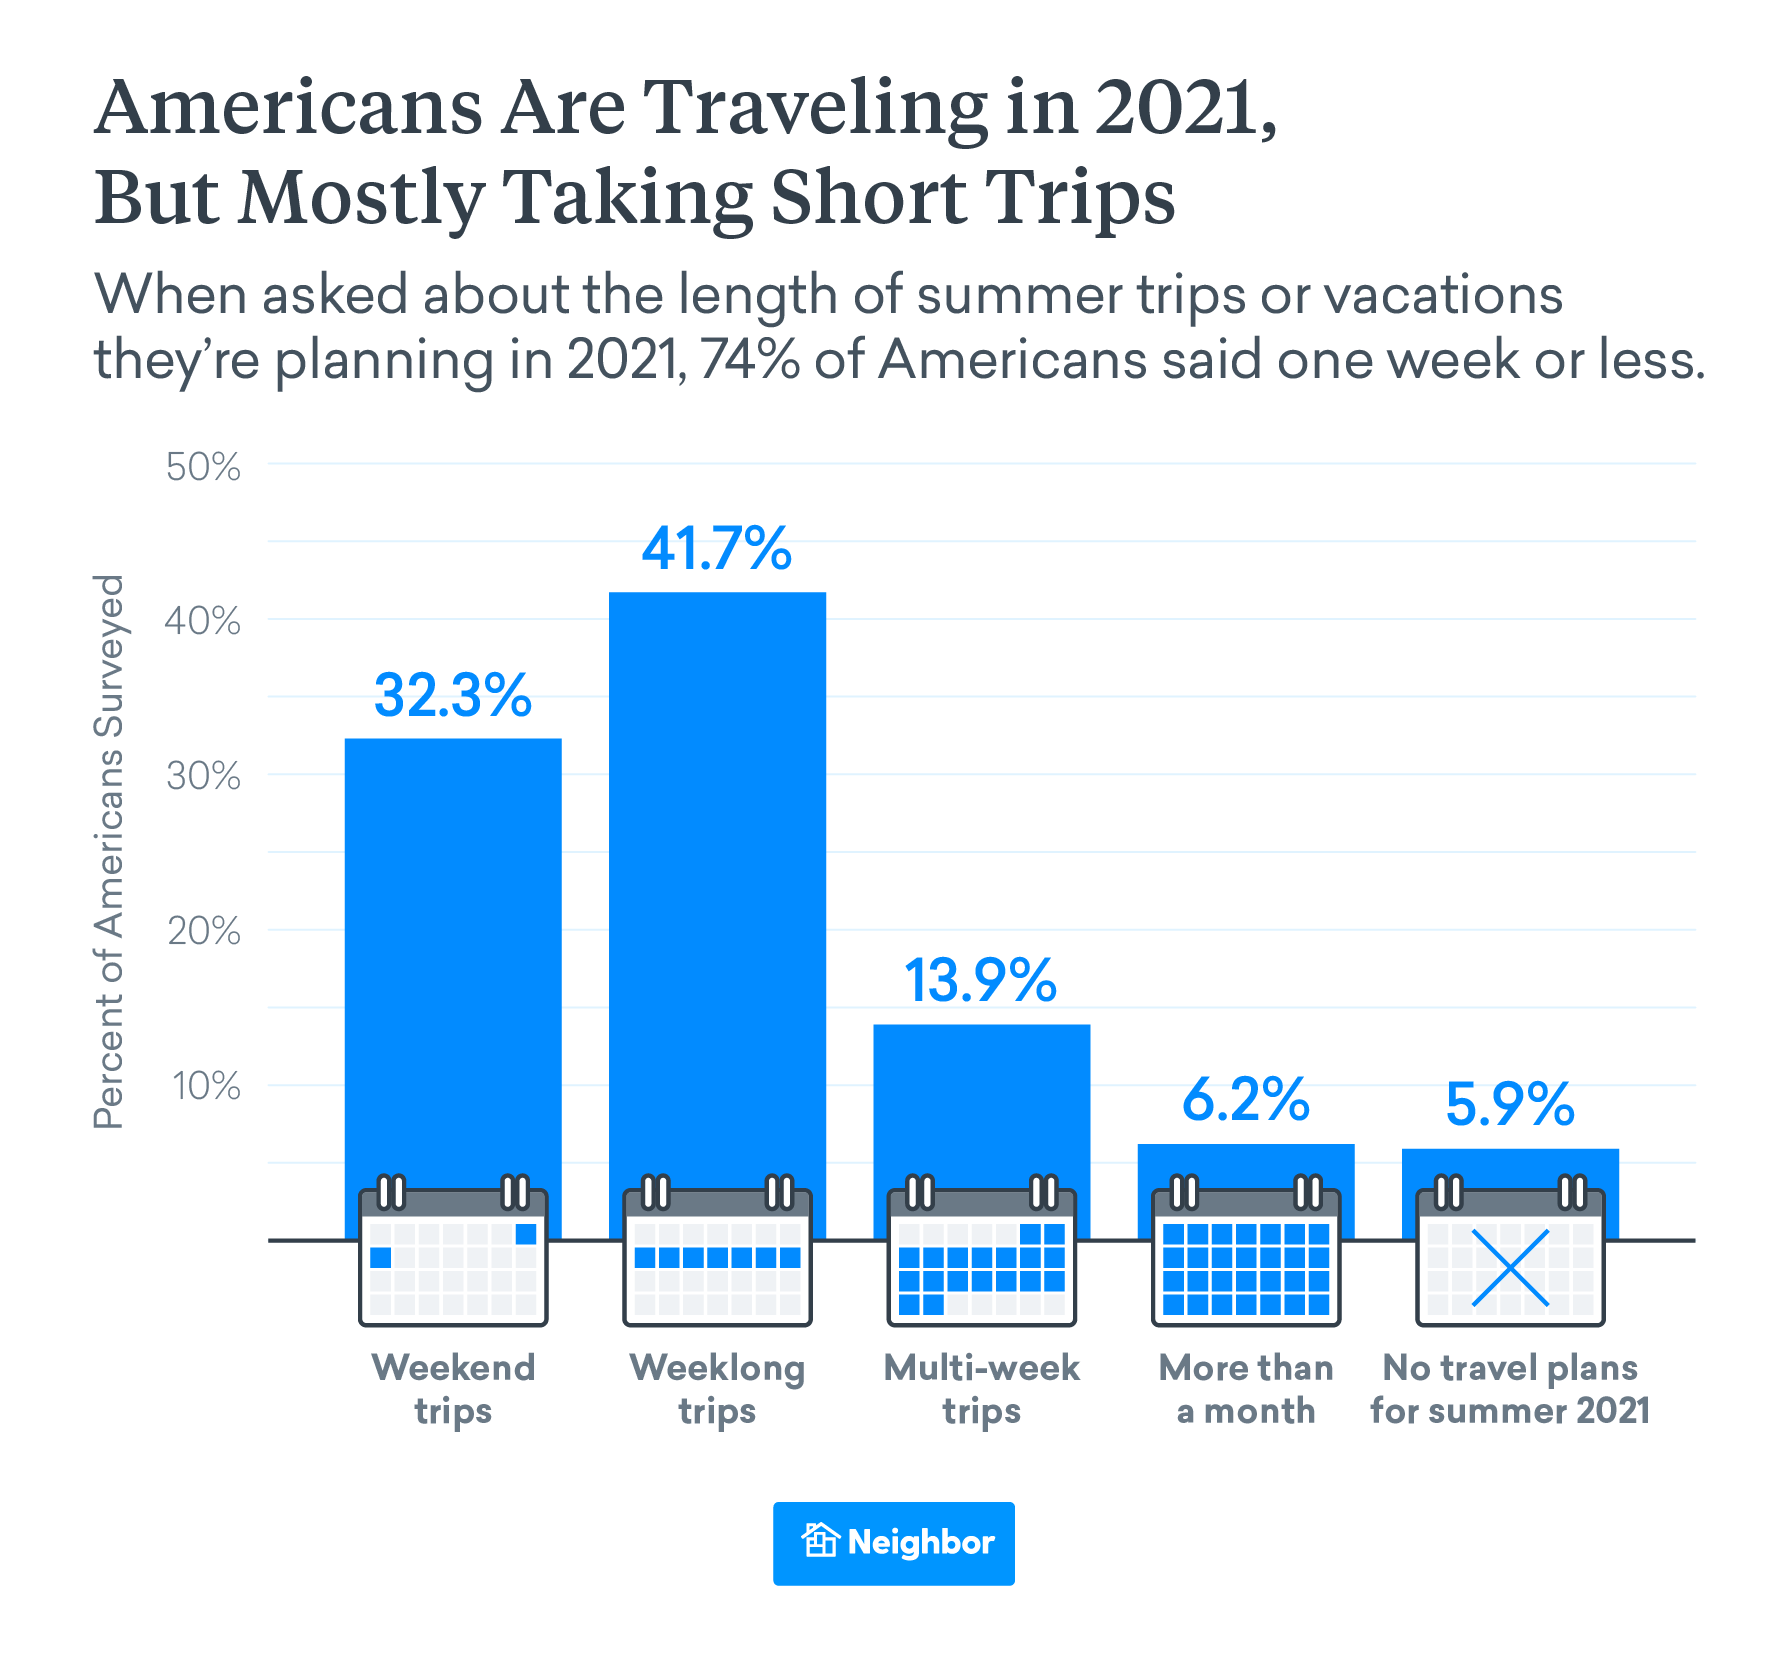 Week-long Trips Are the Most Popular Vacations in 2021